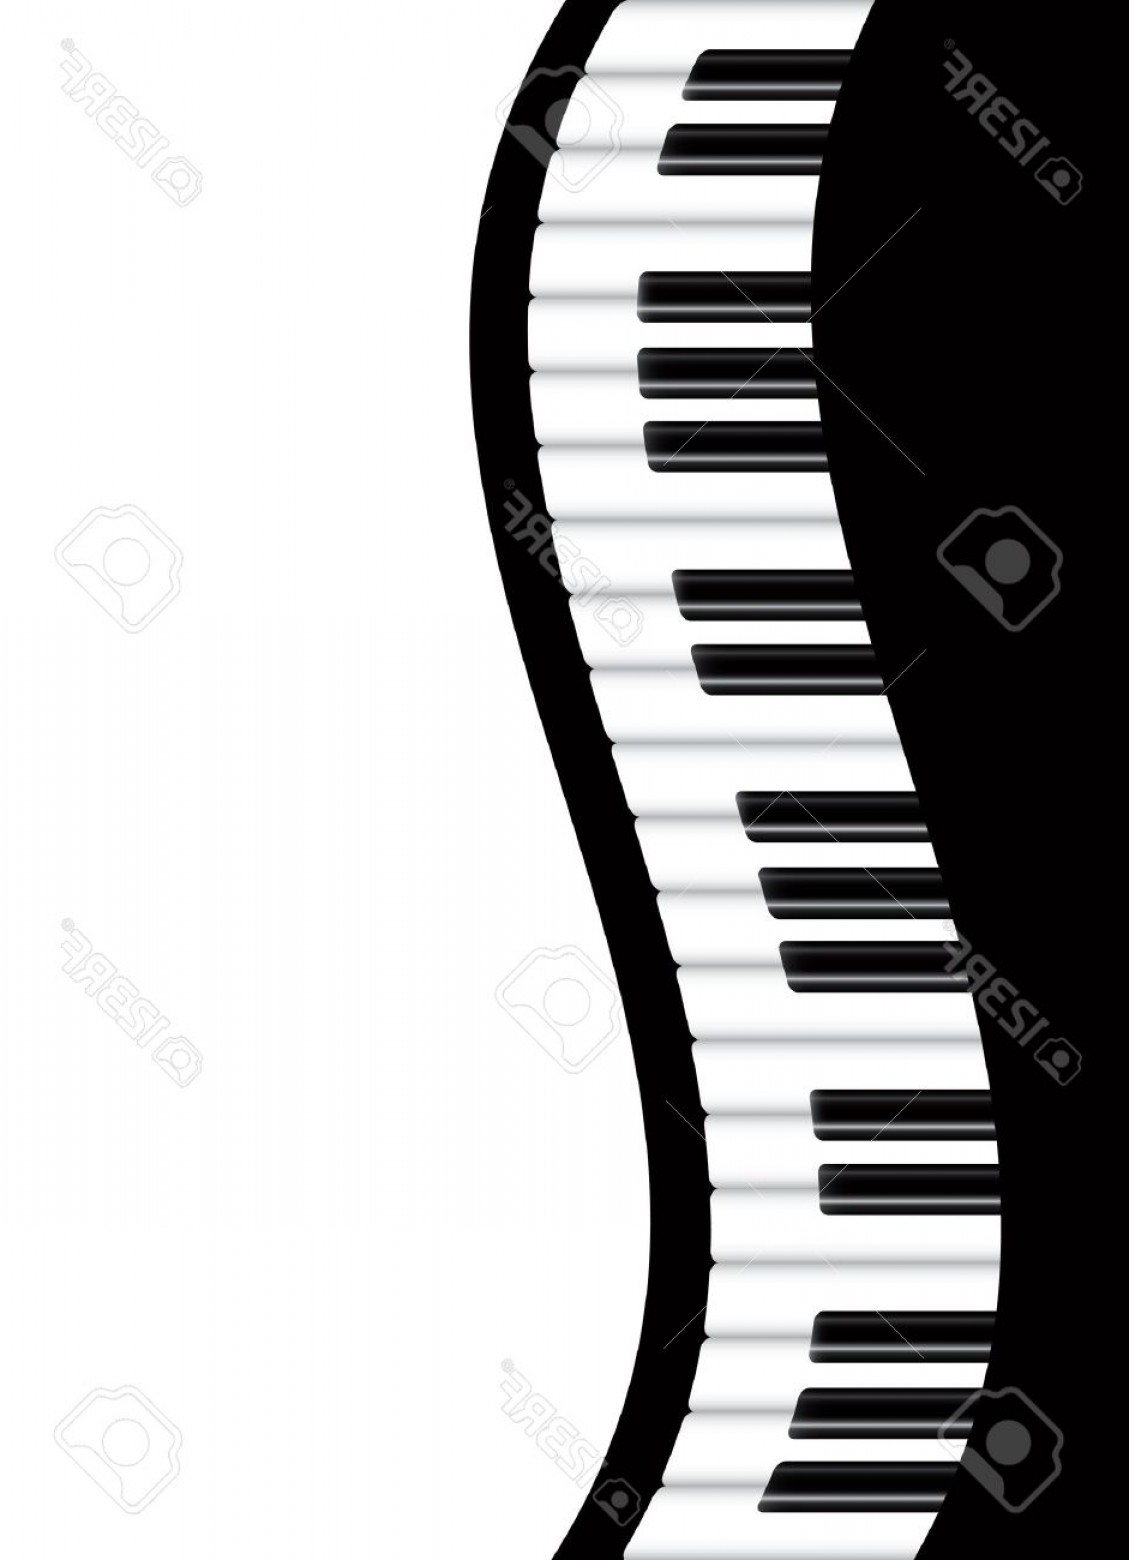 Musical Keyboard Vector: Photopiano Keyboards Wavy Border Background Illustration